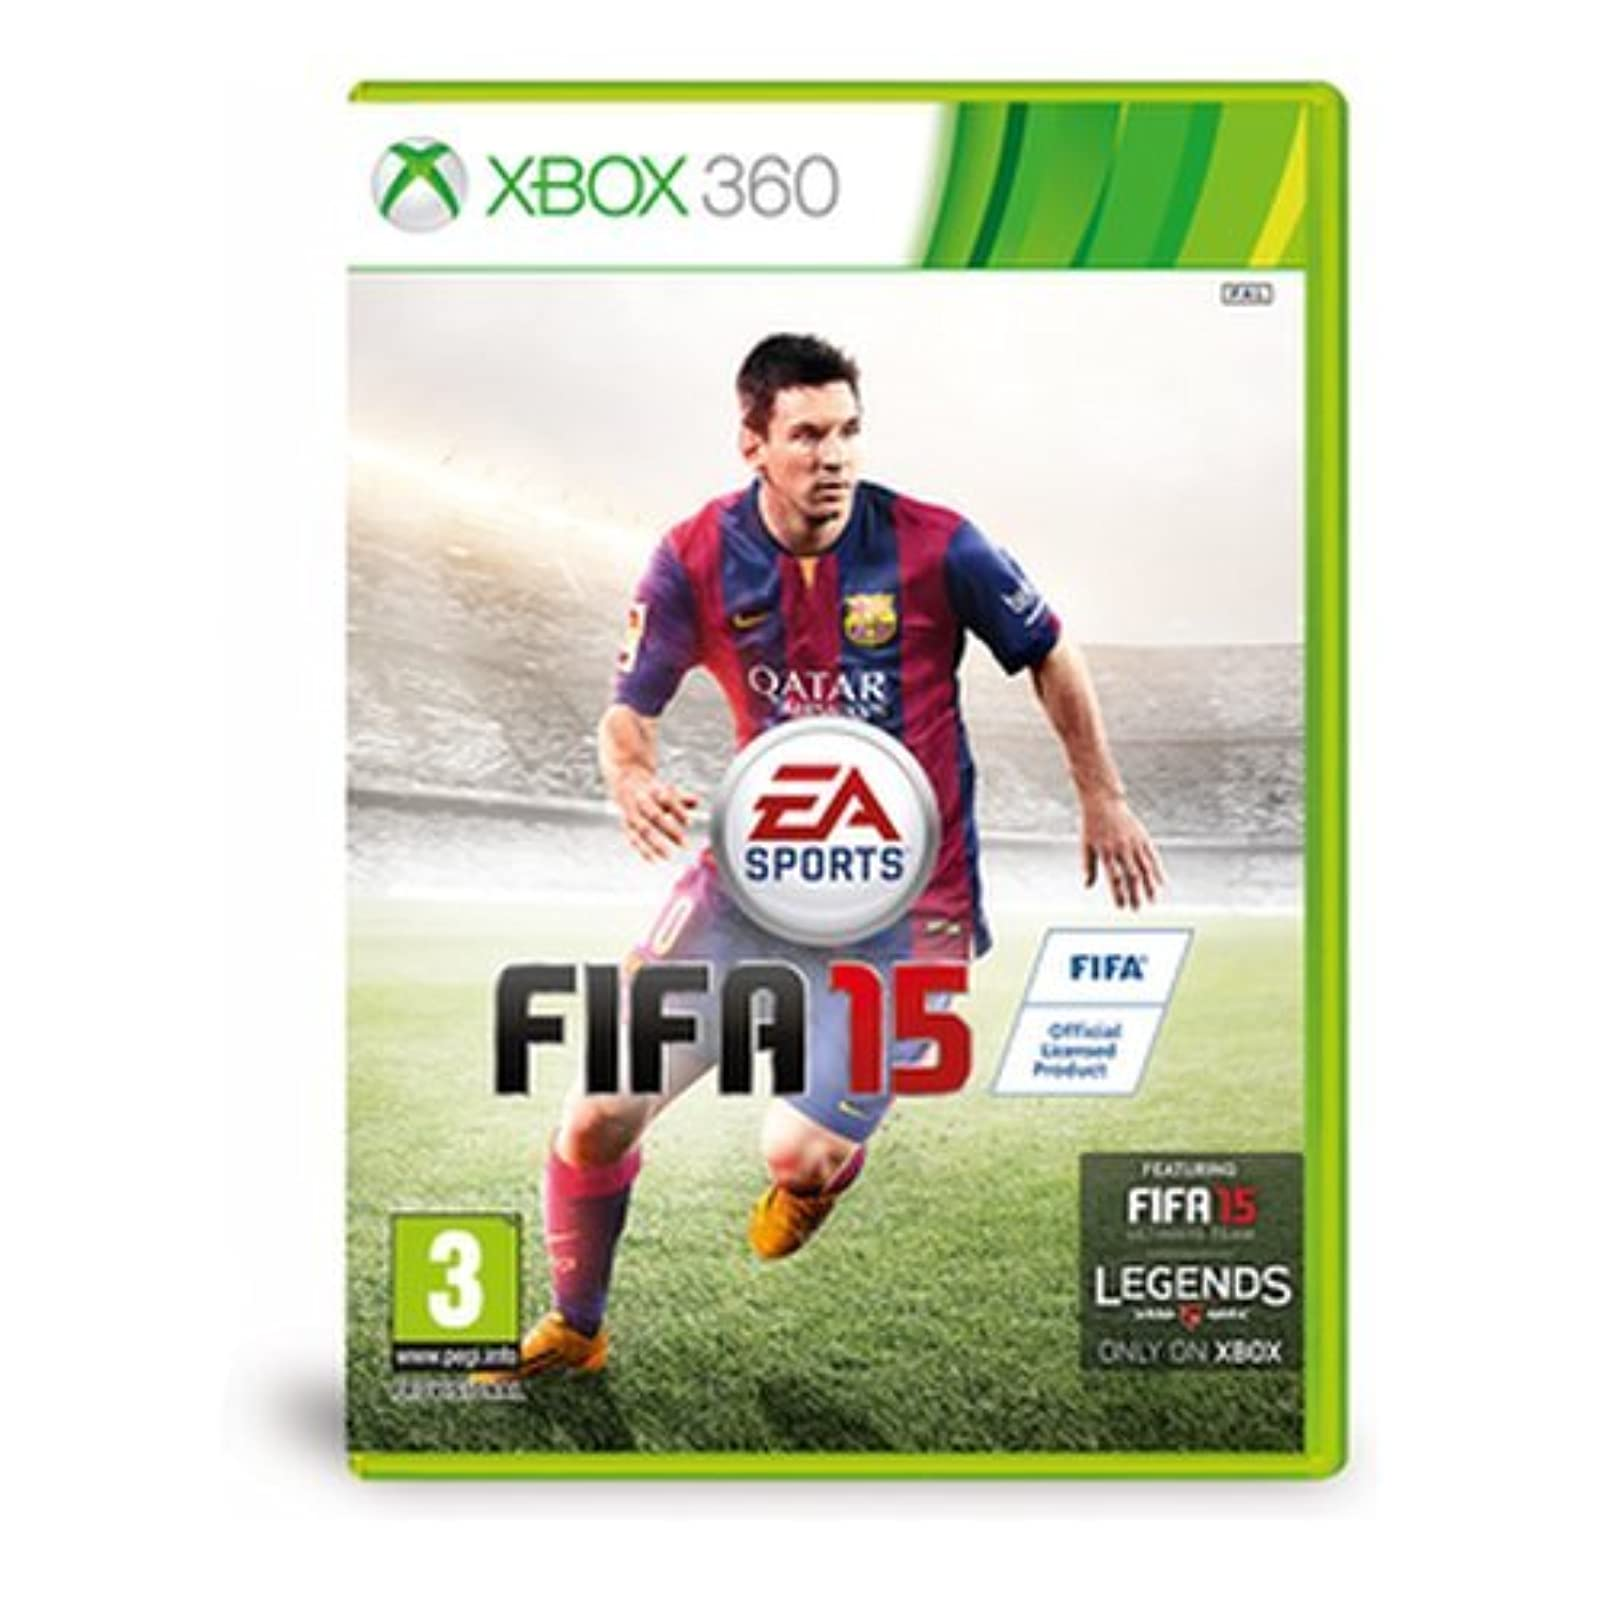 FIFA 15 For Xbox 360 Soccer